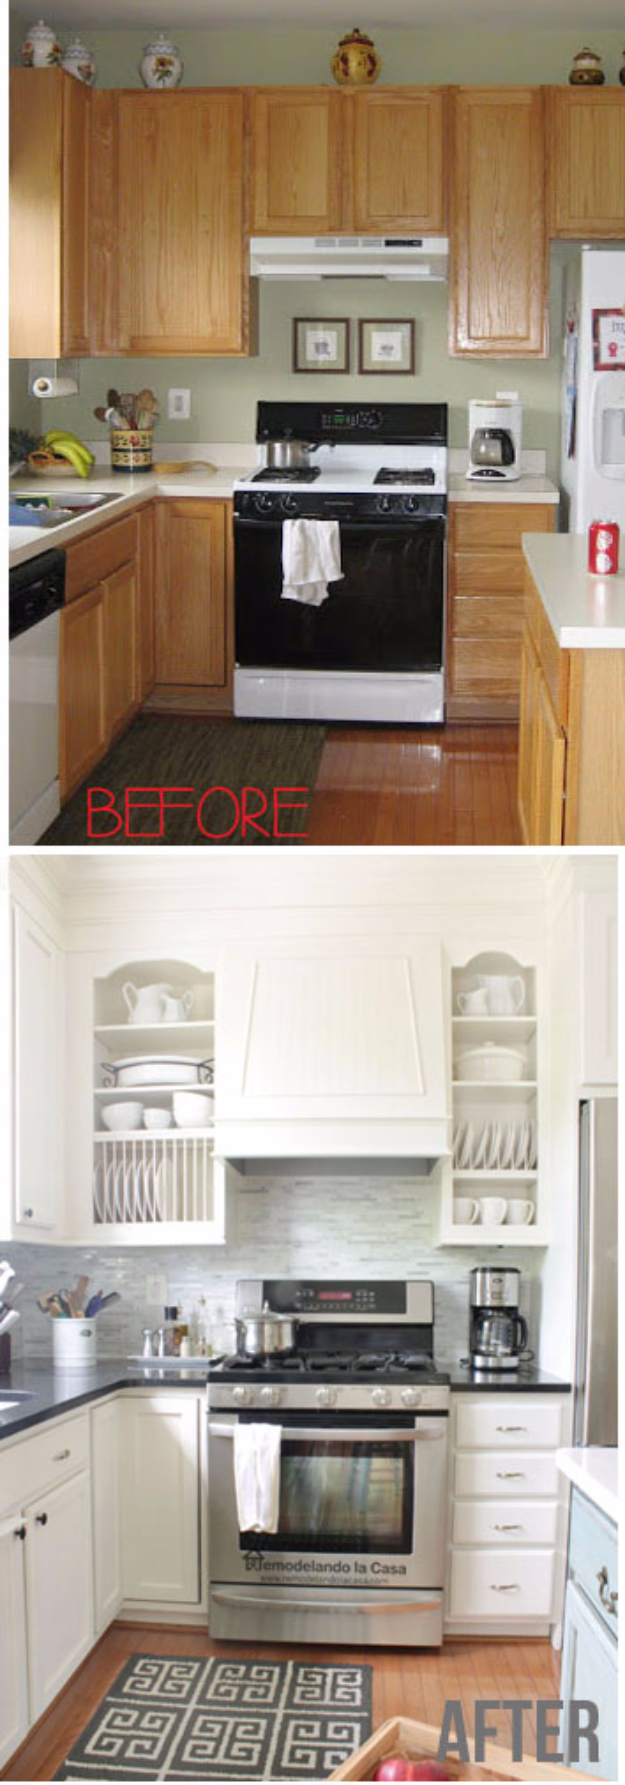 15 Exceptional DIY Makeover Ideas For Your Kitchen When You're On A on white cabinets kitchen remodel ideas, small kitchen update ideas, diy kitchen renovations before and after, diy kitchen improvements, diy kitchen remodels, diy kitchen decor ideas, diy kitchen wall ideas, small kitchen design ideas, diy kitchen painting ideas, diy kitchen lighting ideas, diy play kitchen ideas, diy small kitchen organization ideas, diy kitchen makeover, diy kitchen design, kitchen with oak cabinets design ideas, hgtv small kitchen ideas, diy kitchen backsplash ideas, simple bar basement ideas, for small kitchens kitchen ideas, diy kitchen color ideas,